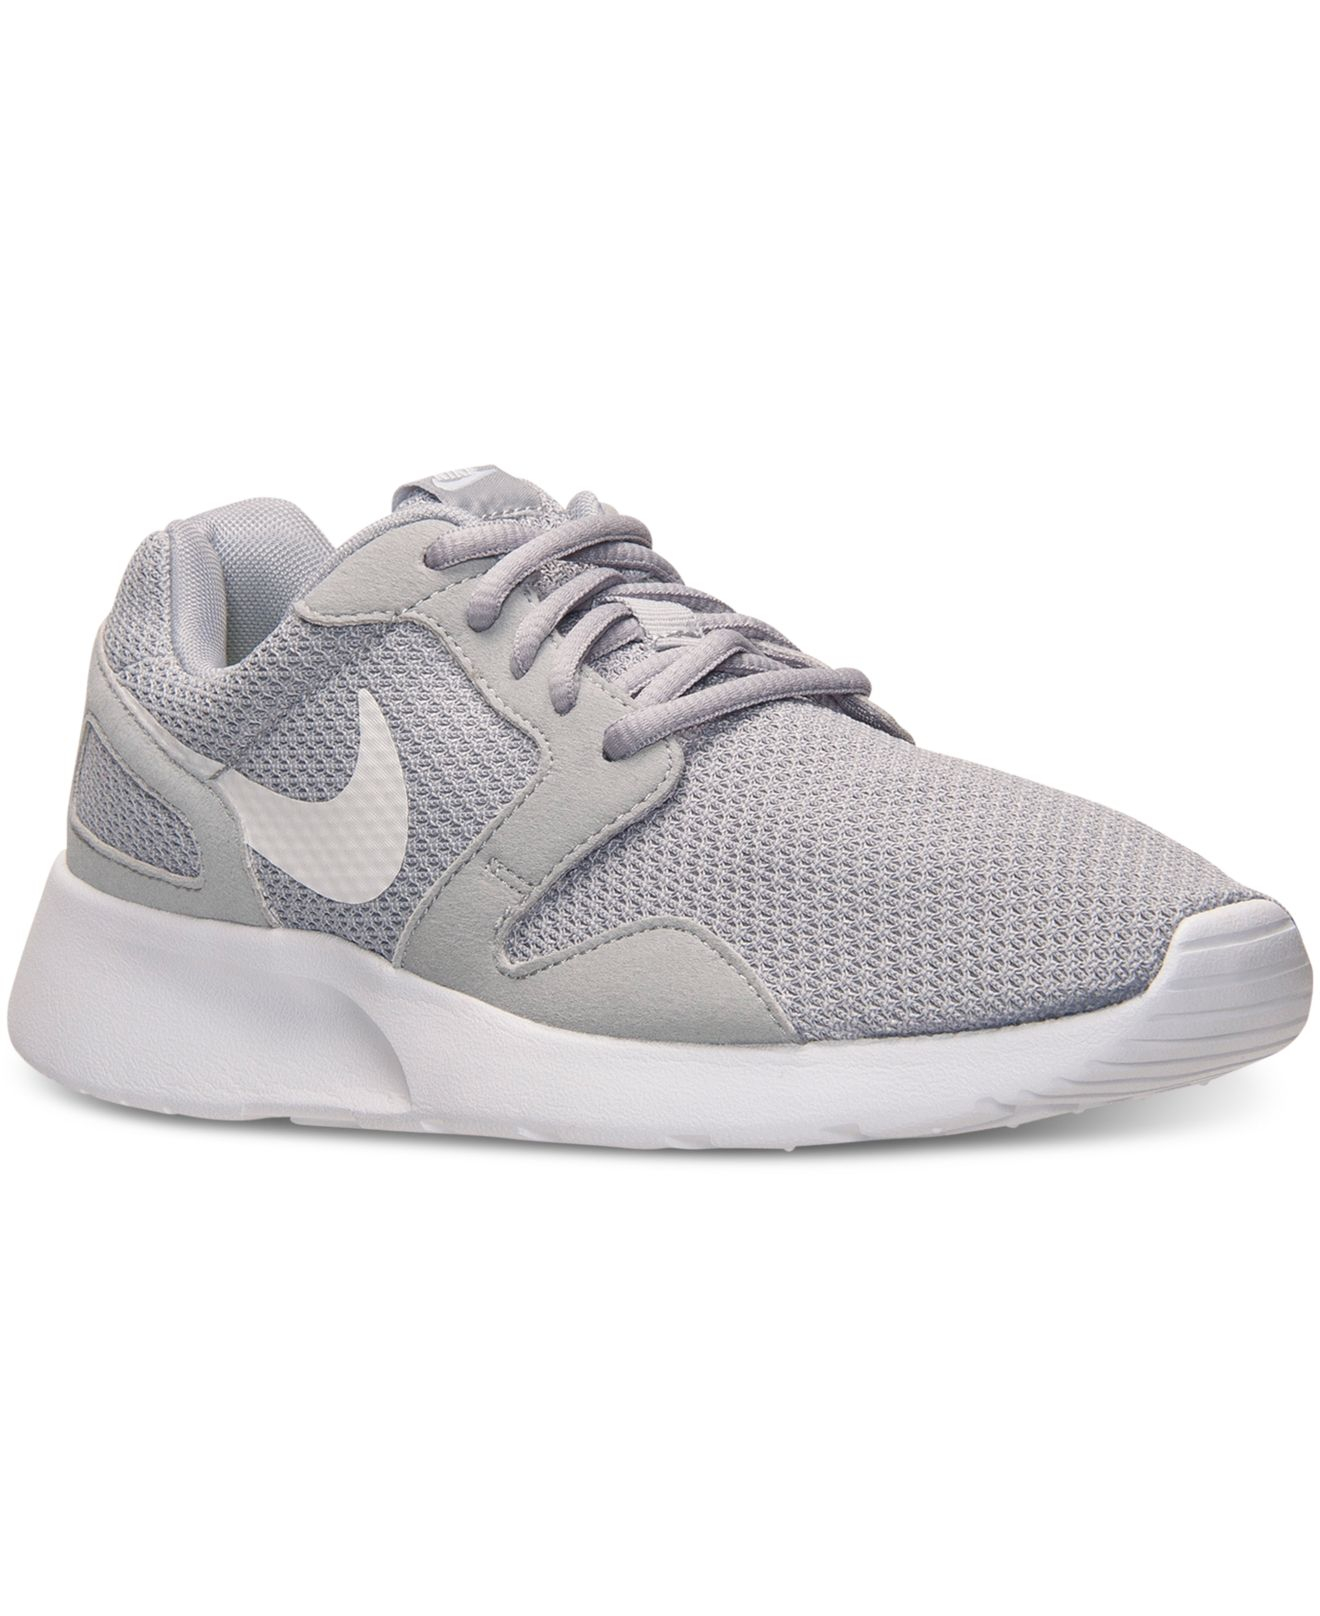 Nike Women's Kaishi Casual Sneakers From Finish Line in ...